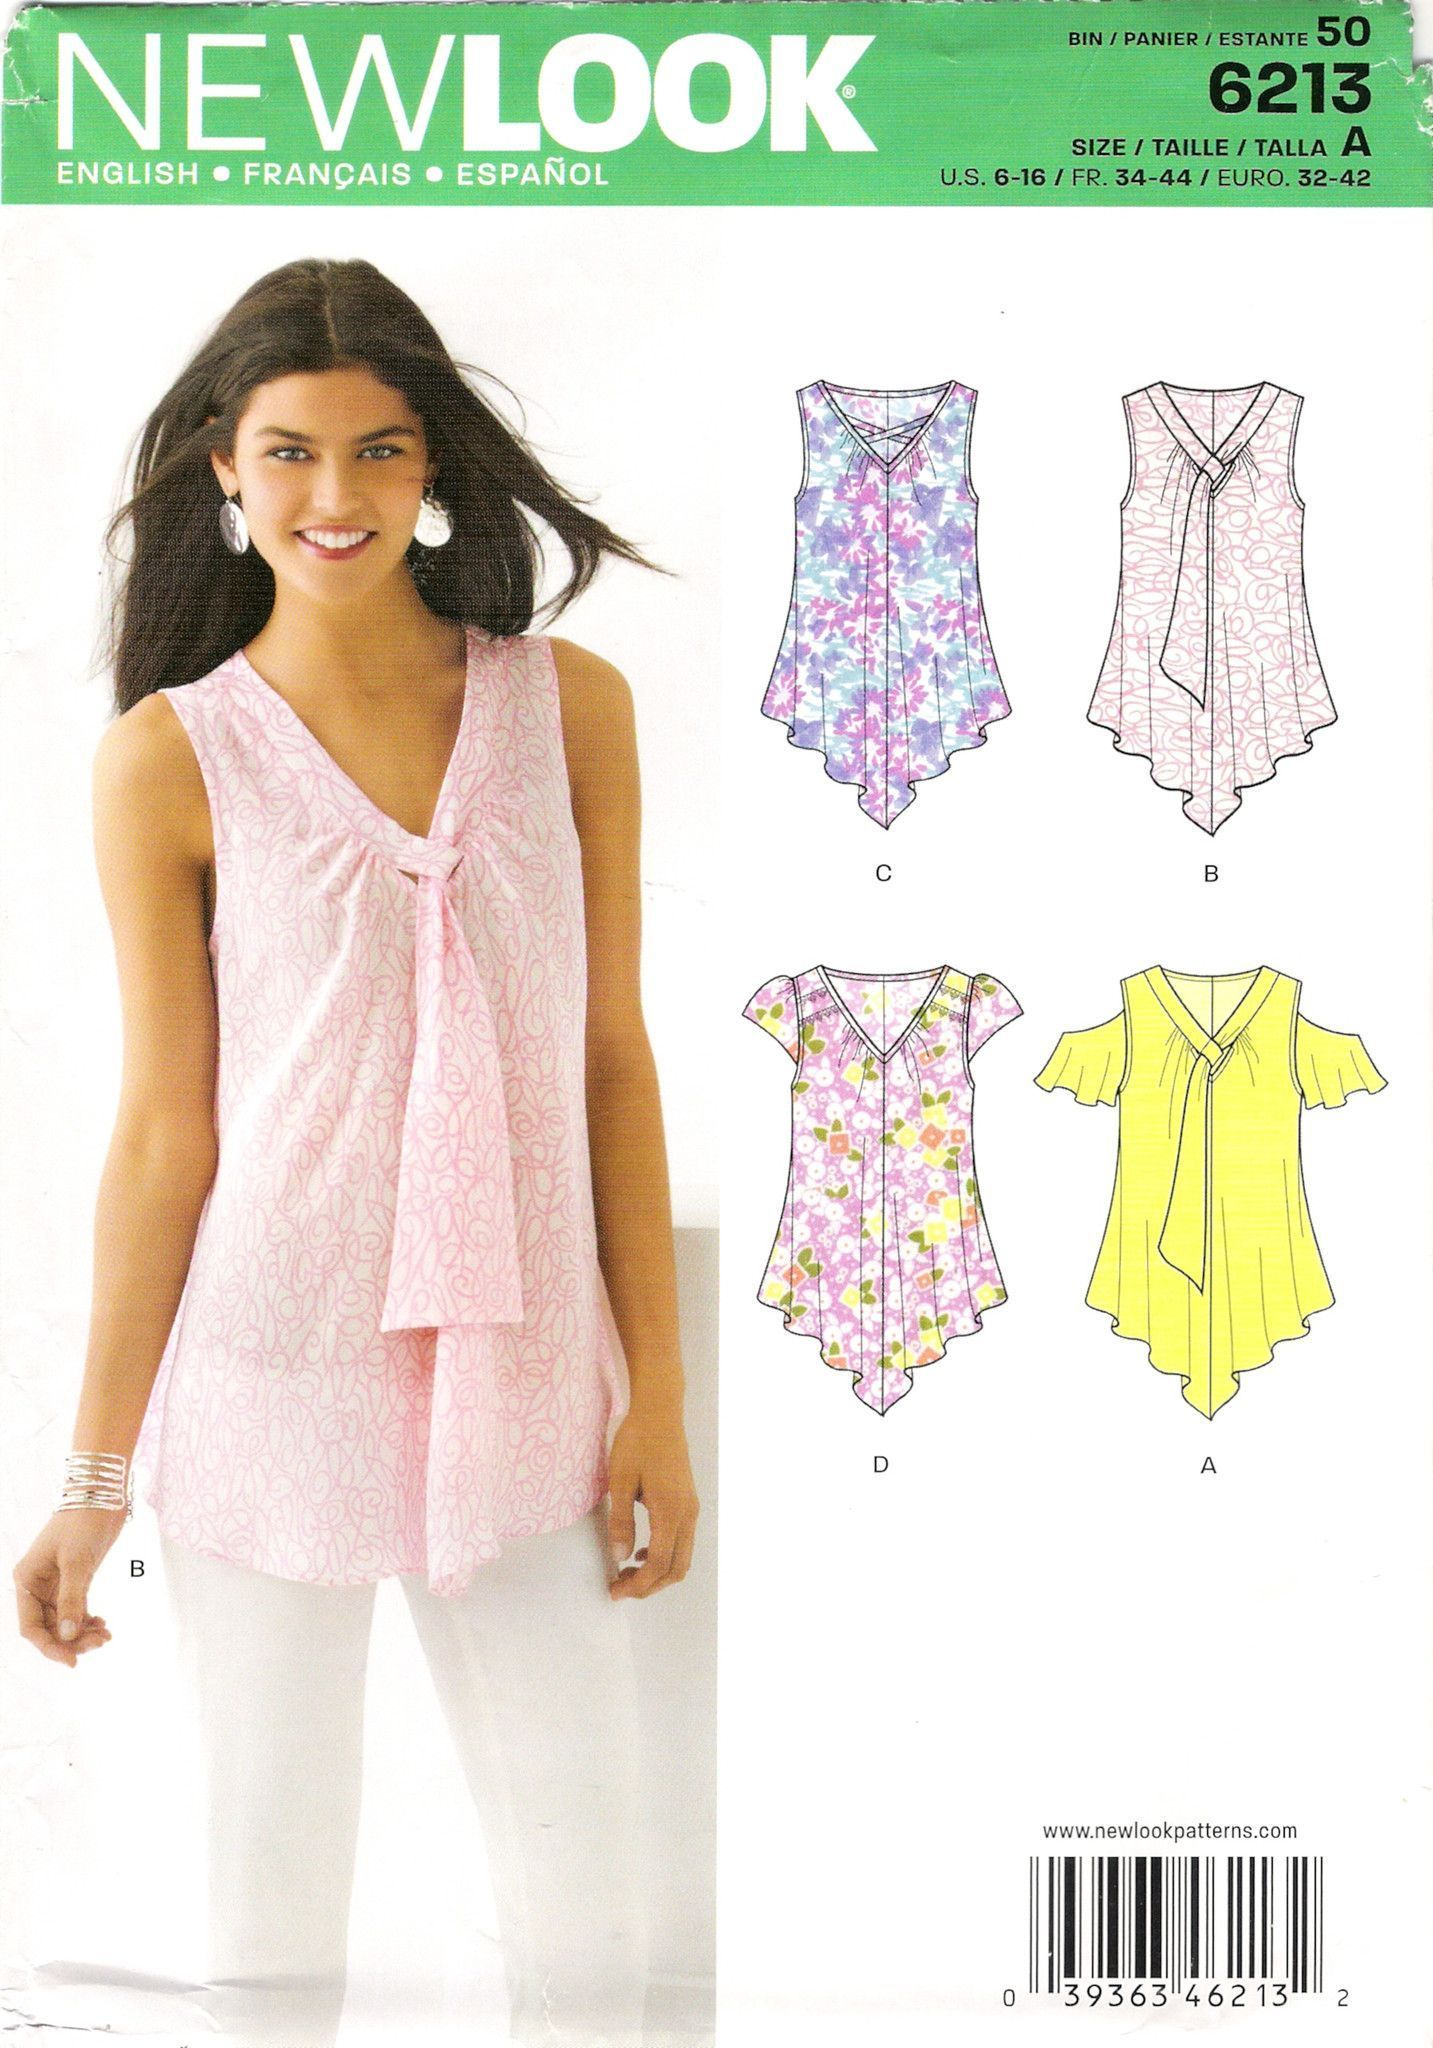 Resultado De Imagen Para Patrones De Blusas Para Imprimir Pdf Top Sewing Pattern New Look Patterns Sewing Dresses